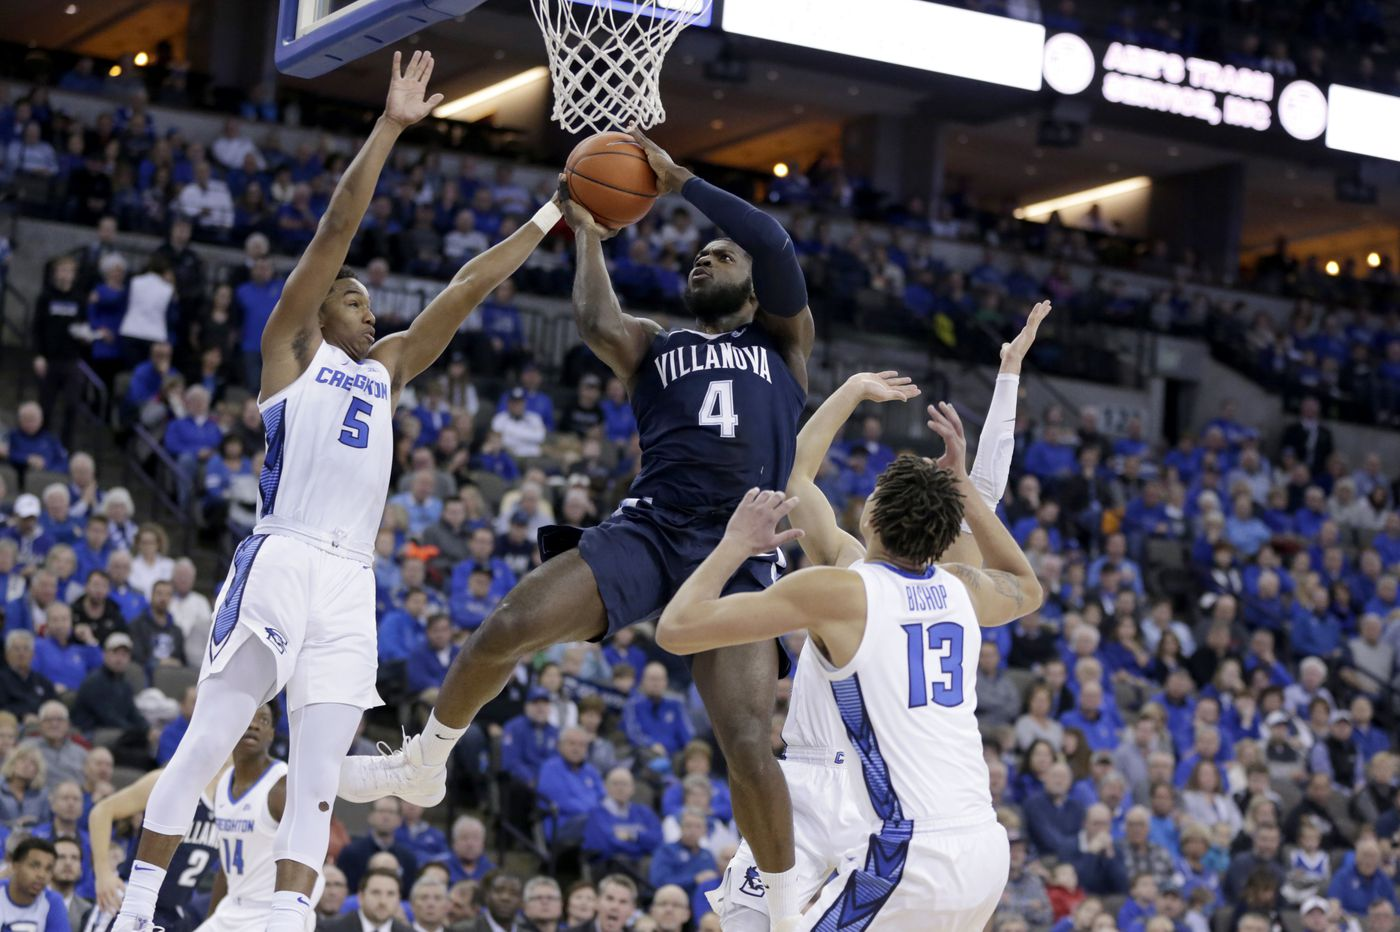 Villanova returns to AP basketball top 25; Temple gets votes after upset win